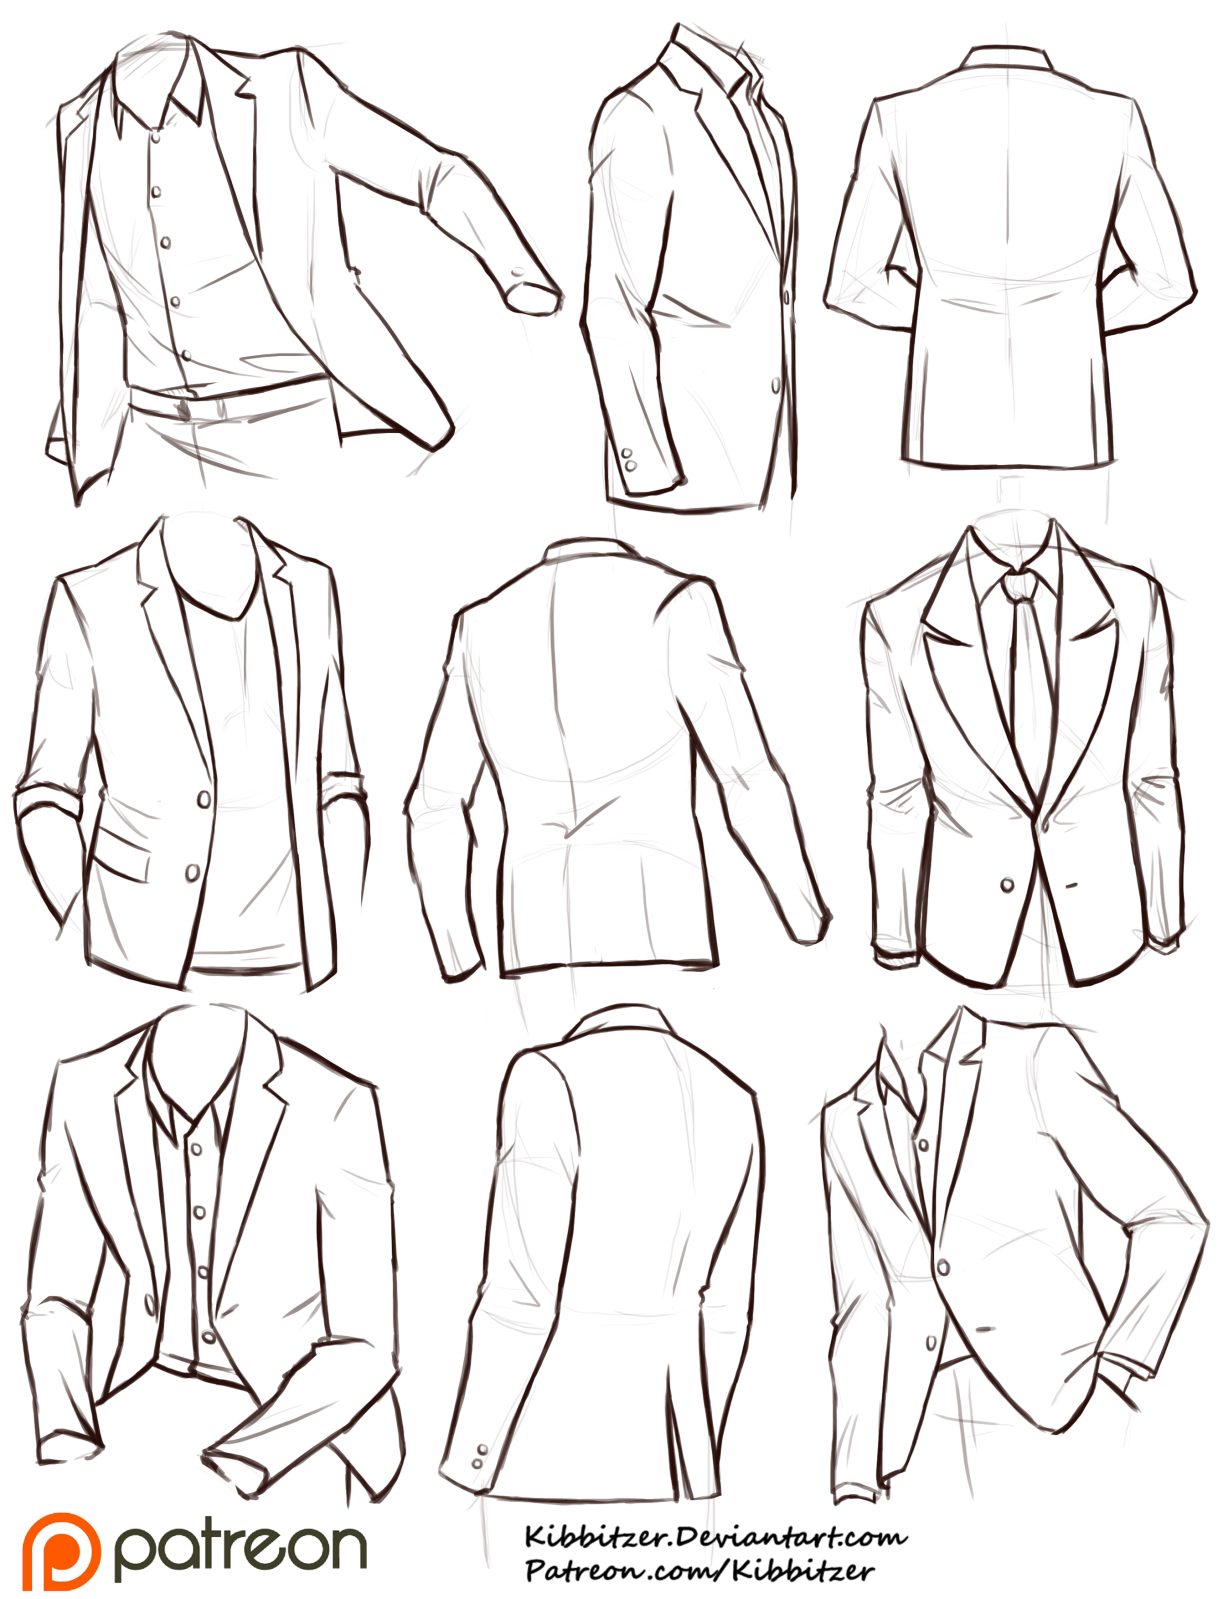 It's just a graphic of Playful Suit Drawing Reference